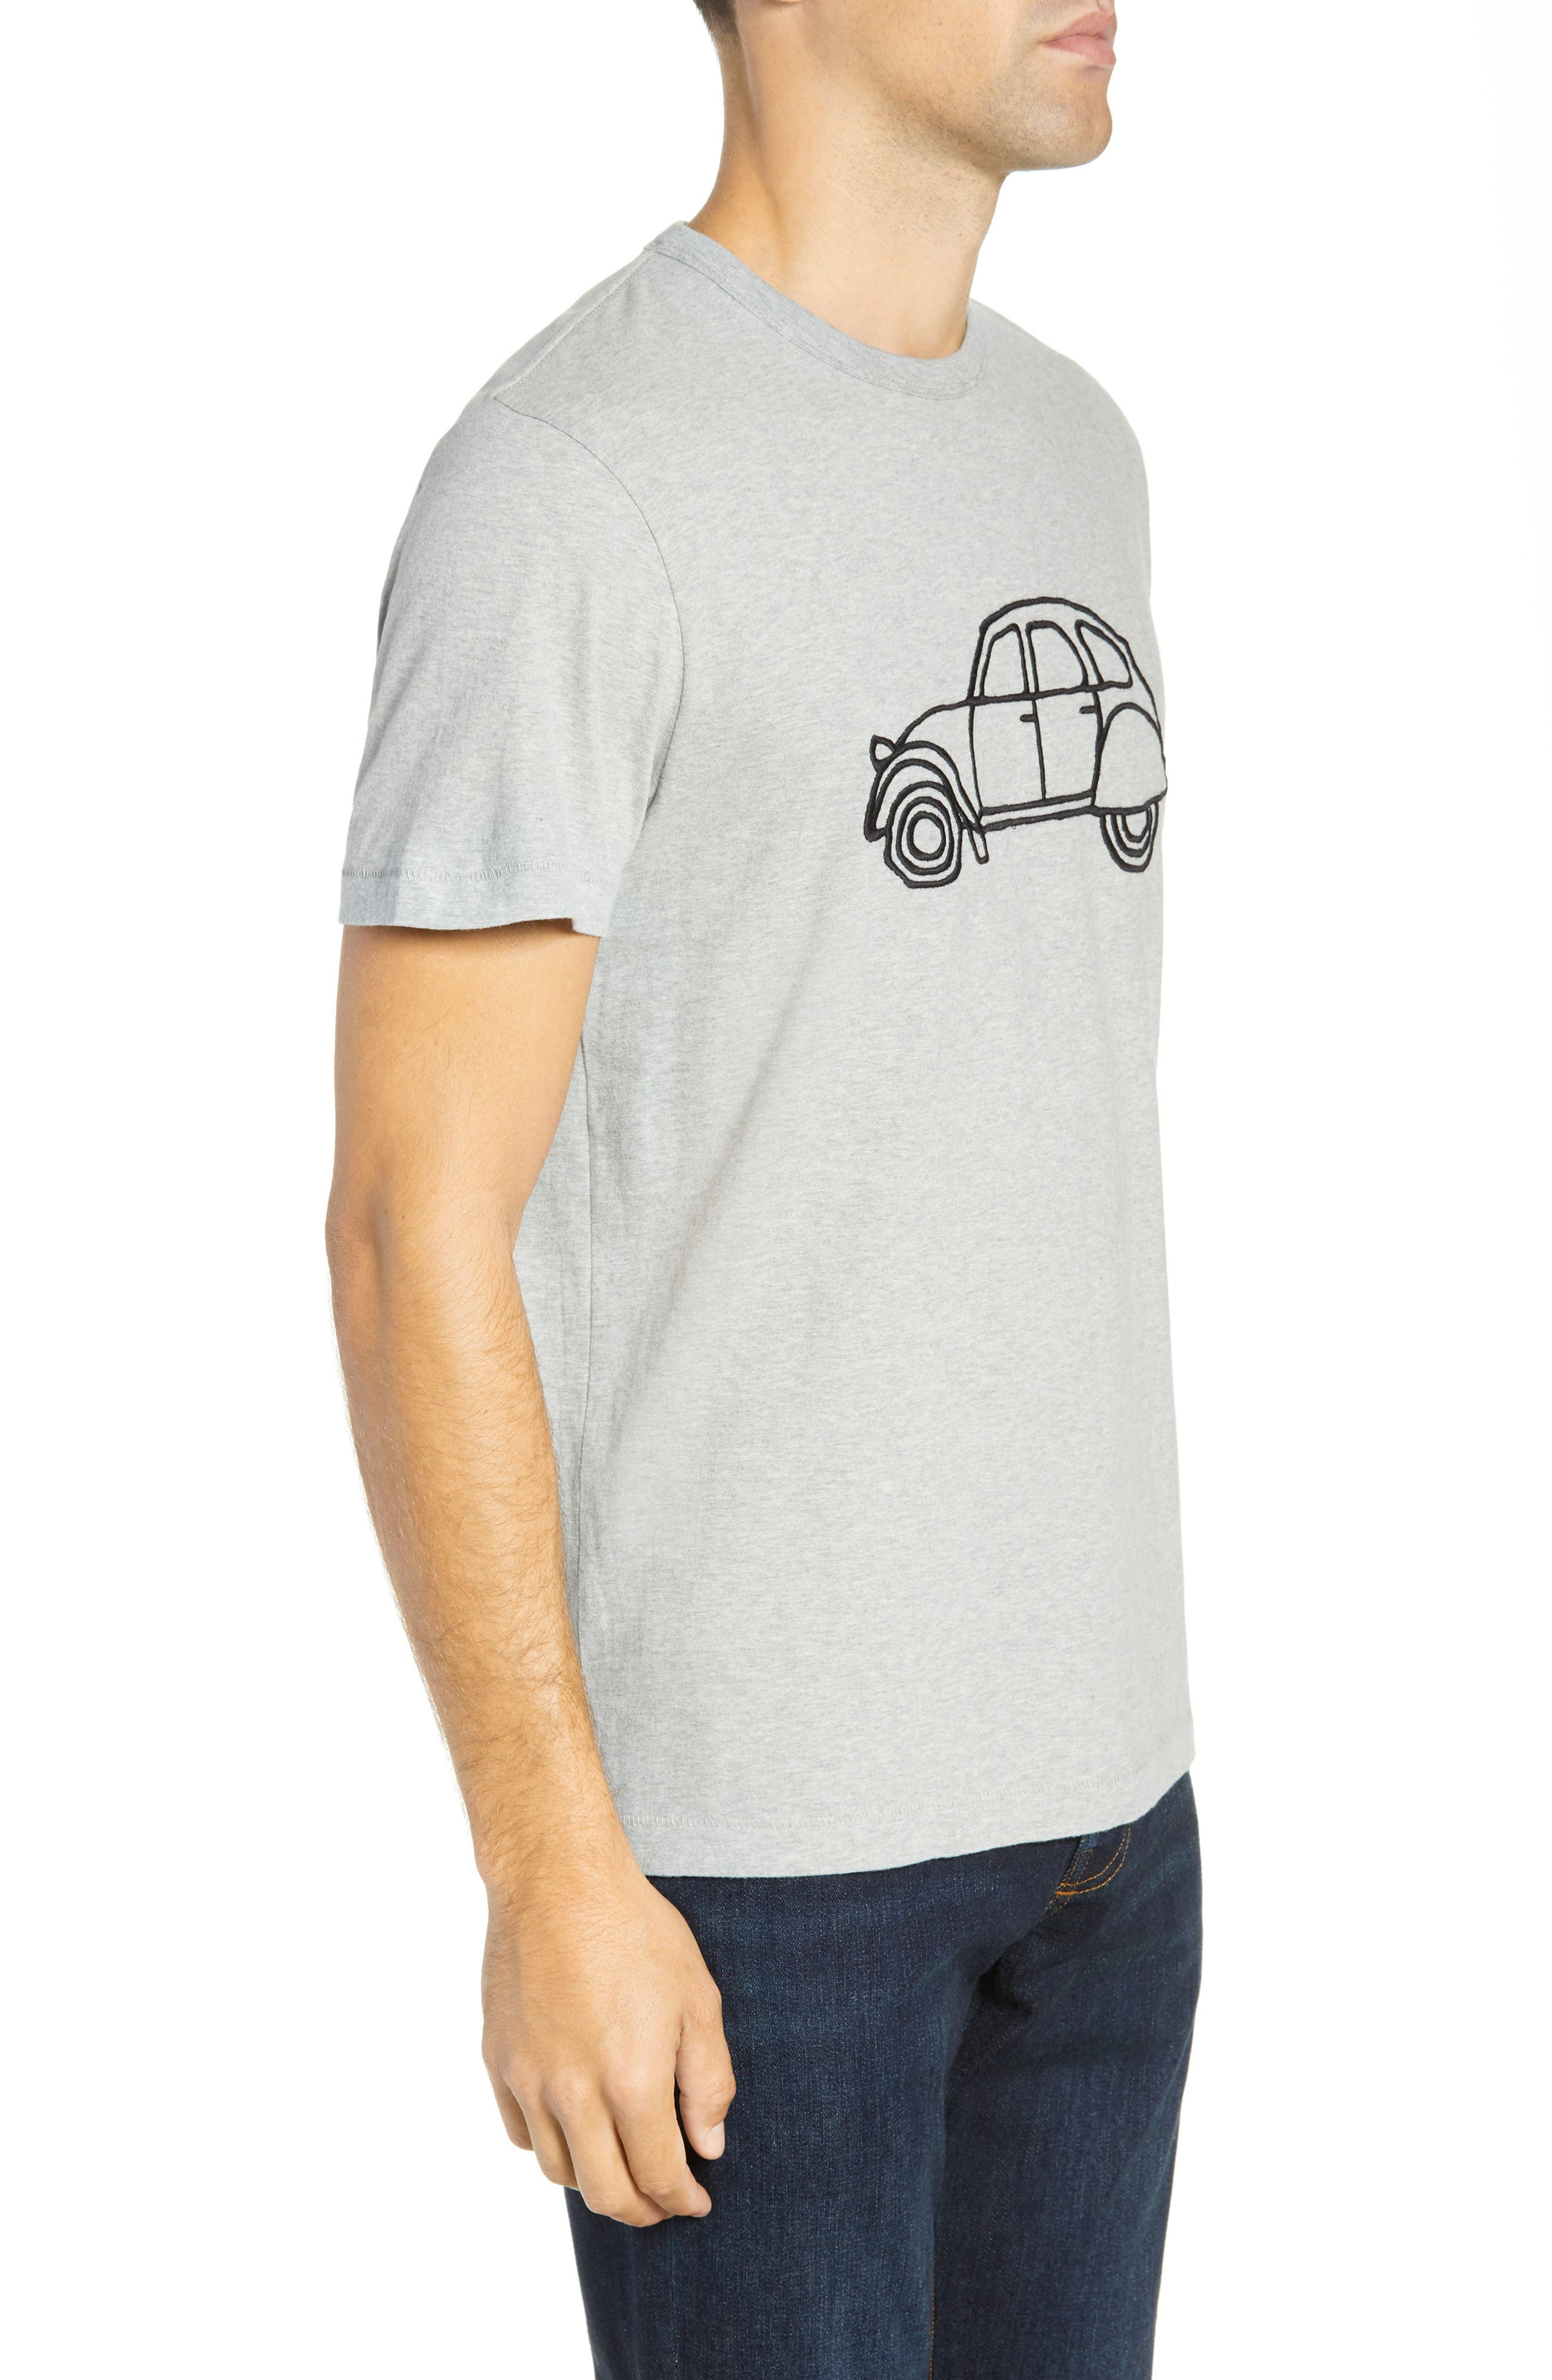 FRENCH CONNECTION,                             Embroidered Car Cotton T-Shirt,                             Alternate thumbnail 3, color,                             020